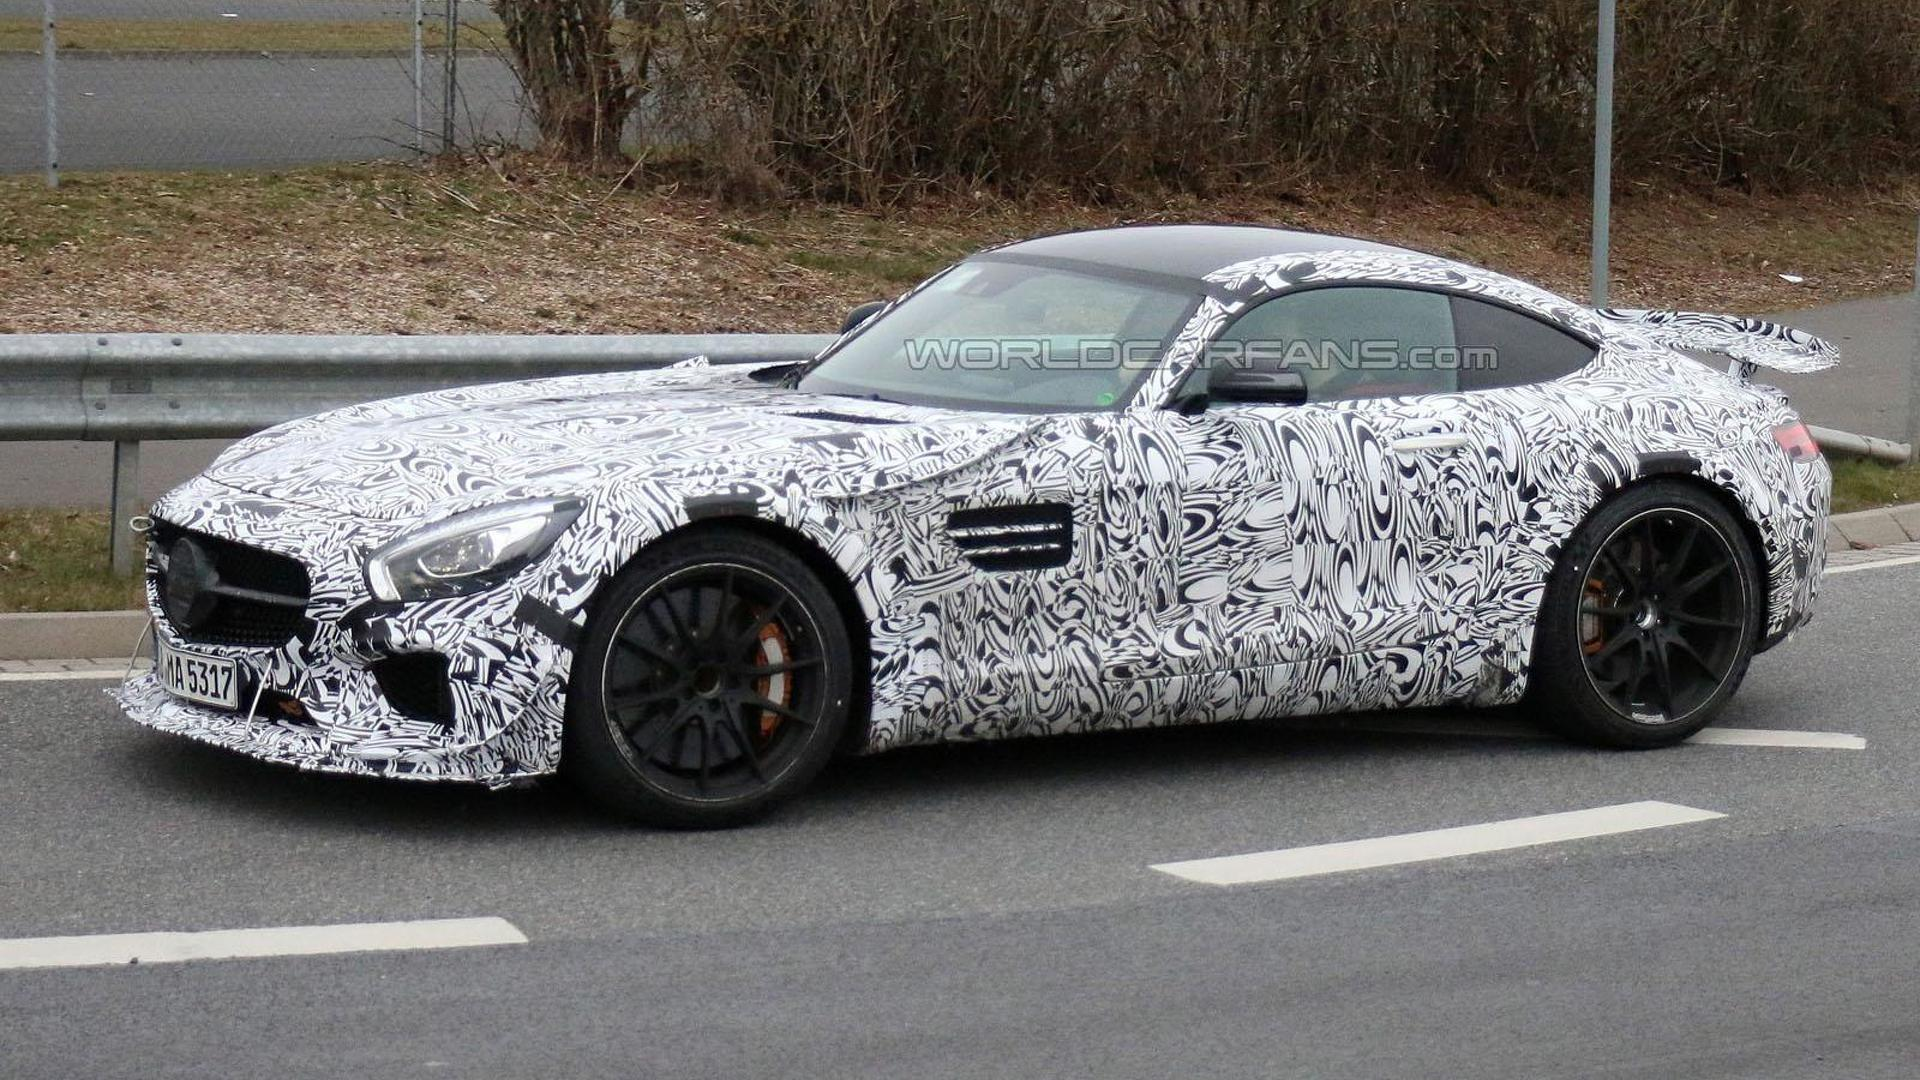 High-performance Mercedes-AMG GT spied, could be a road-going version of the GT3